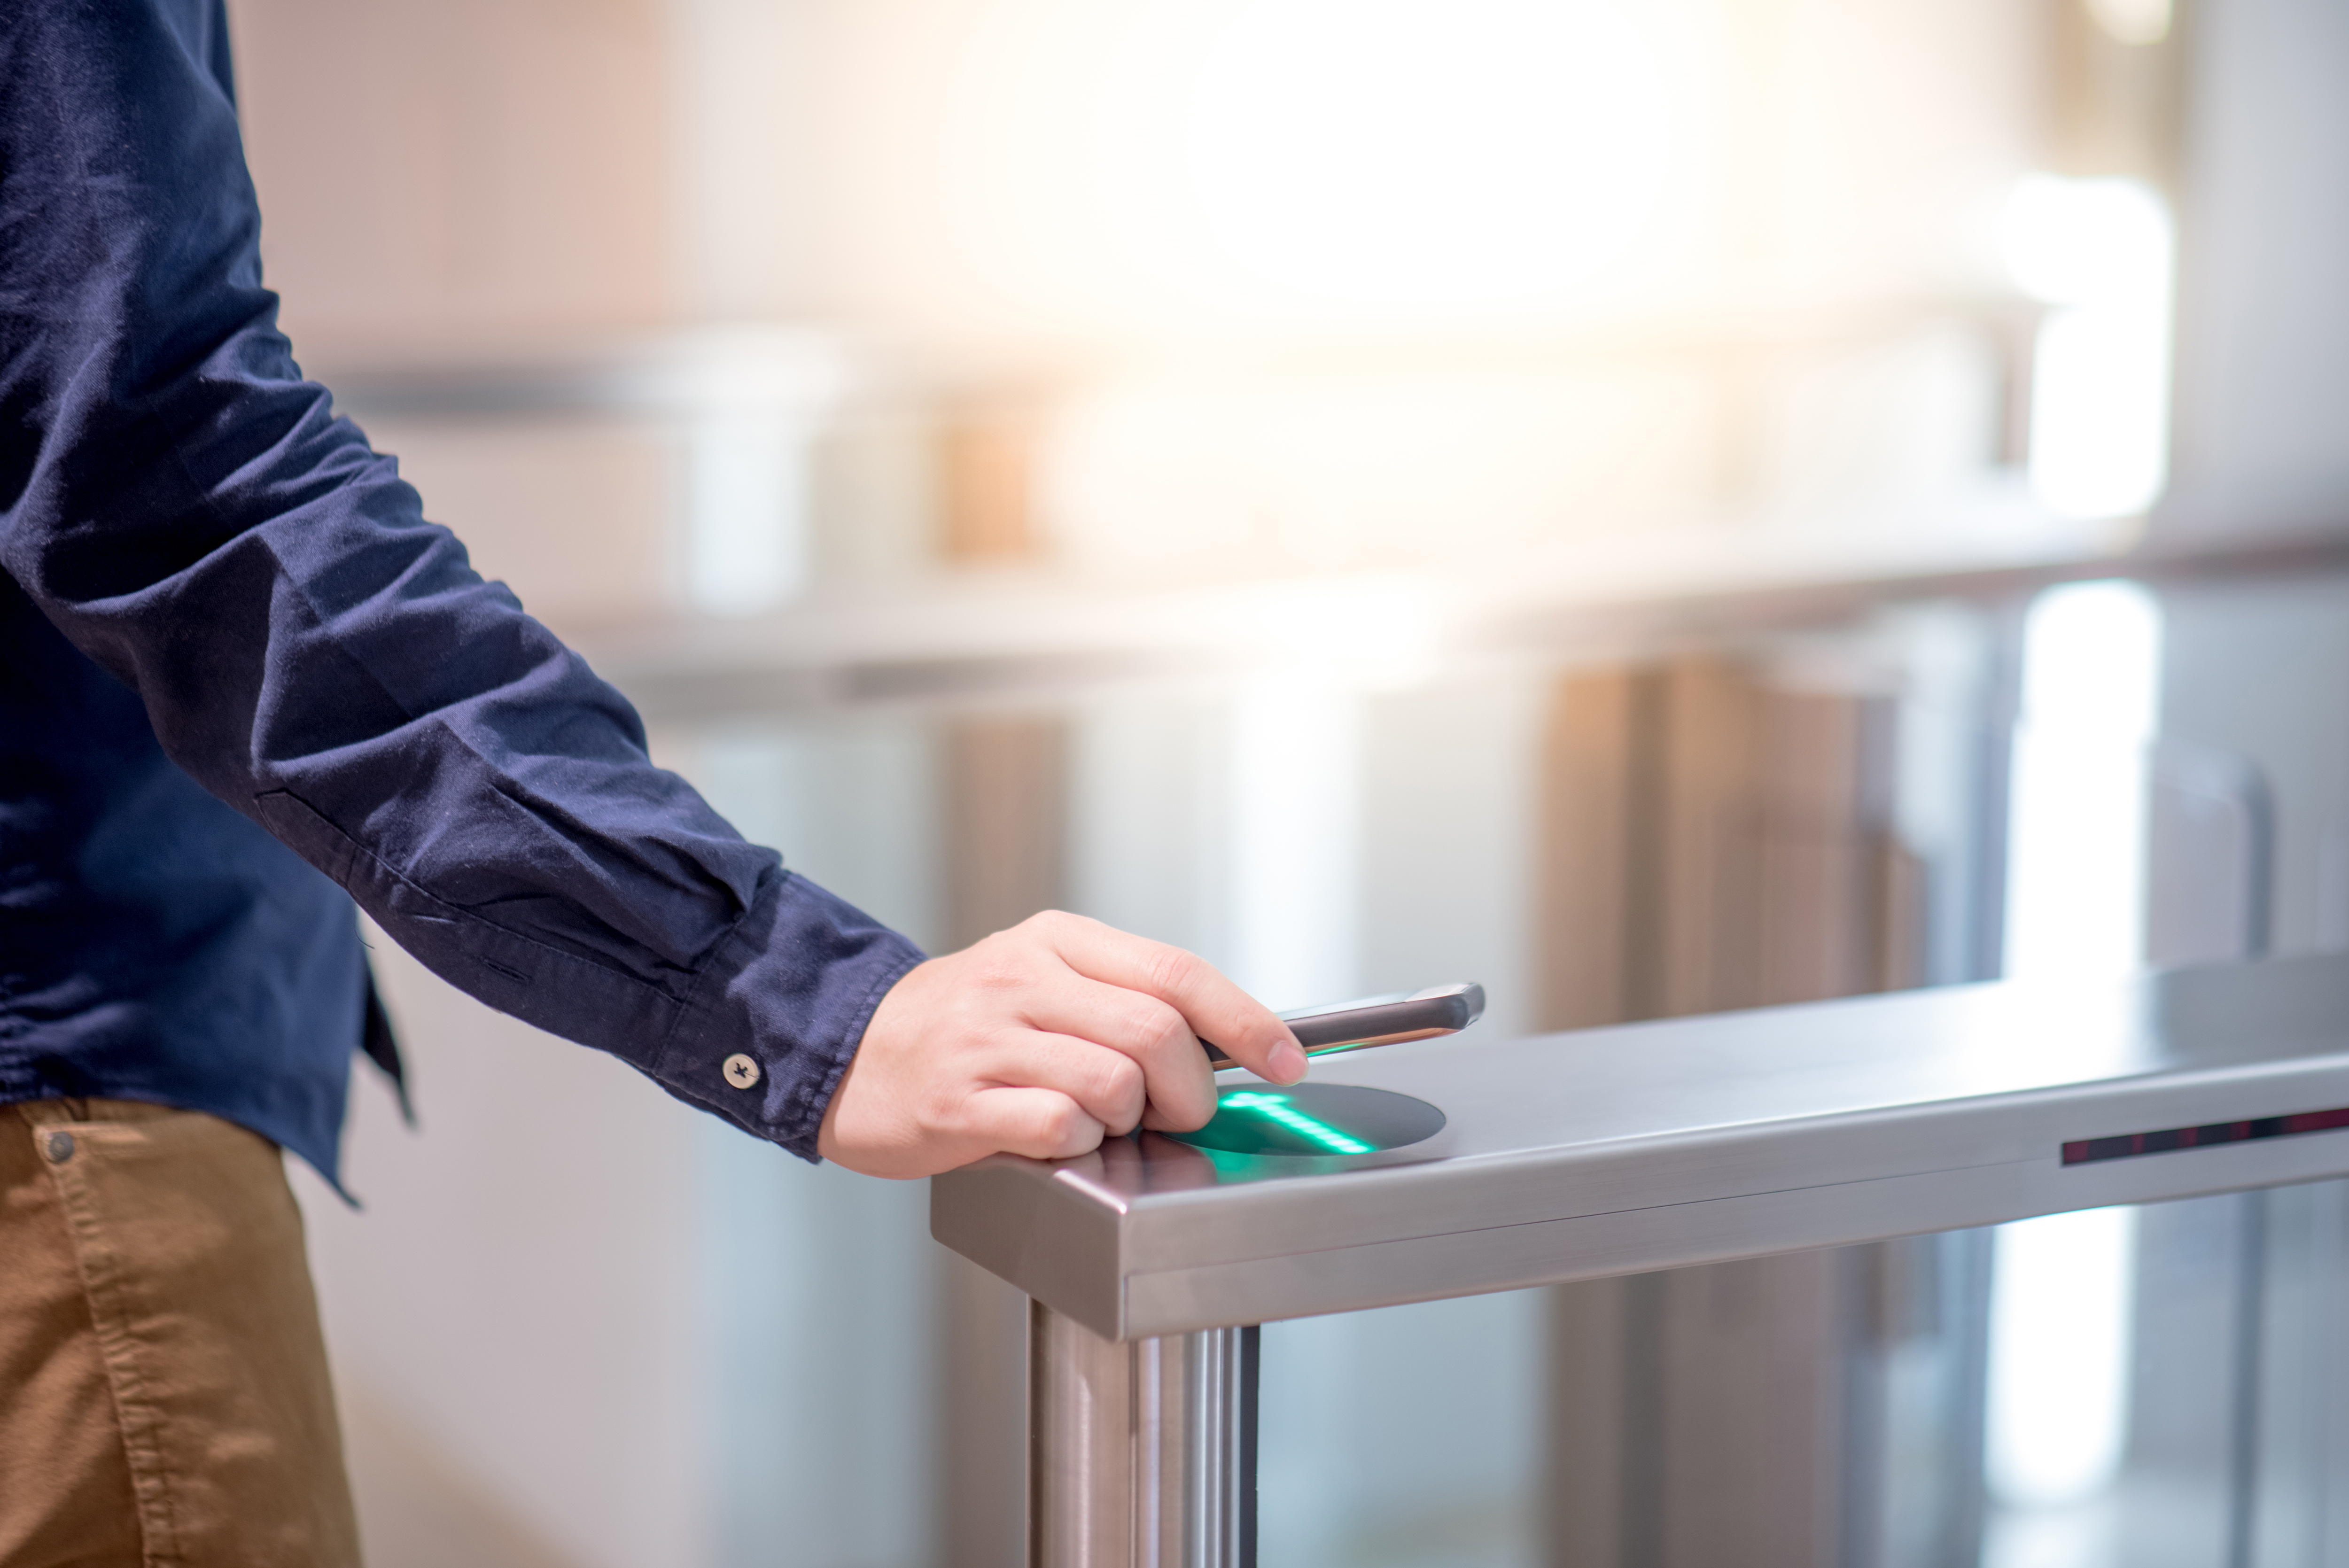 Man touching reader with phone to access an entry point